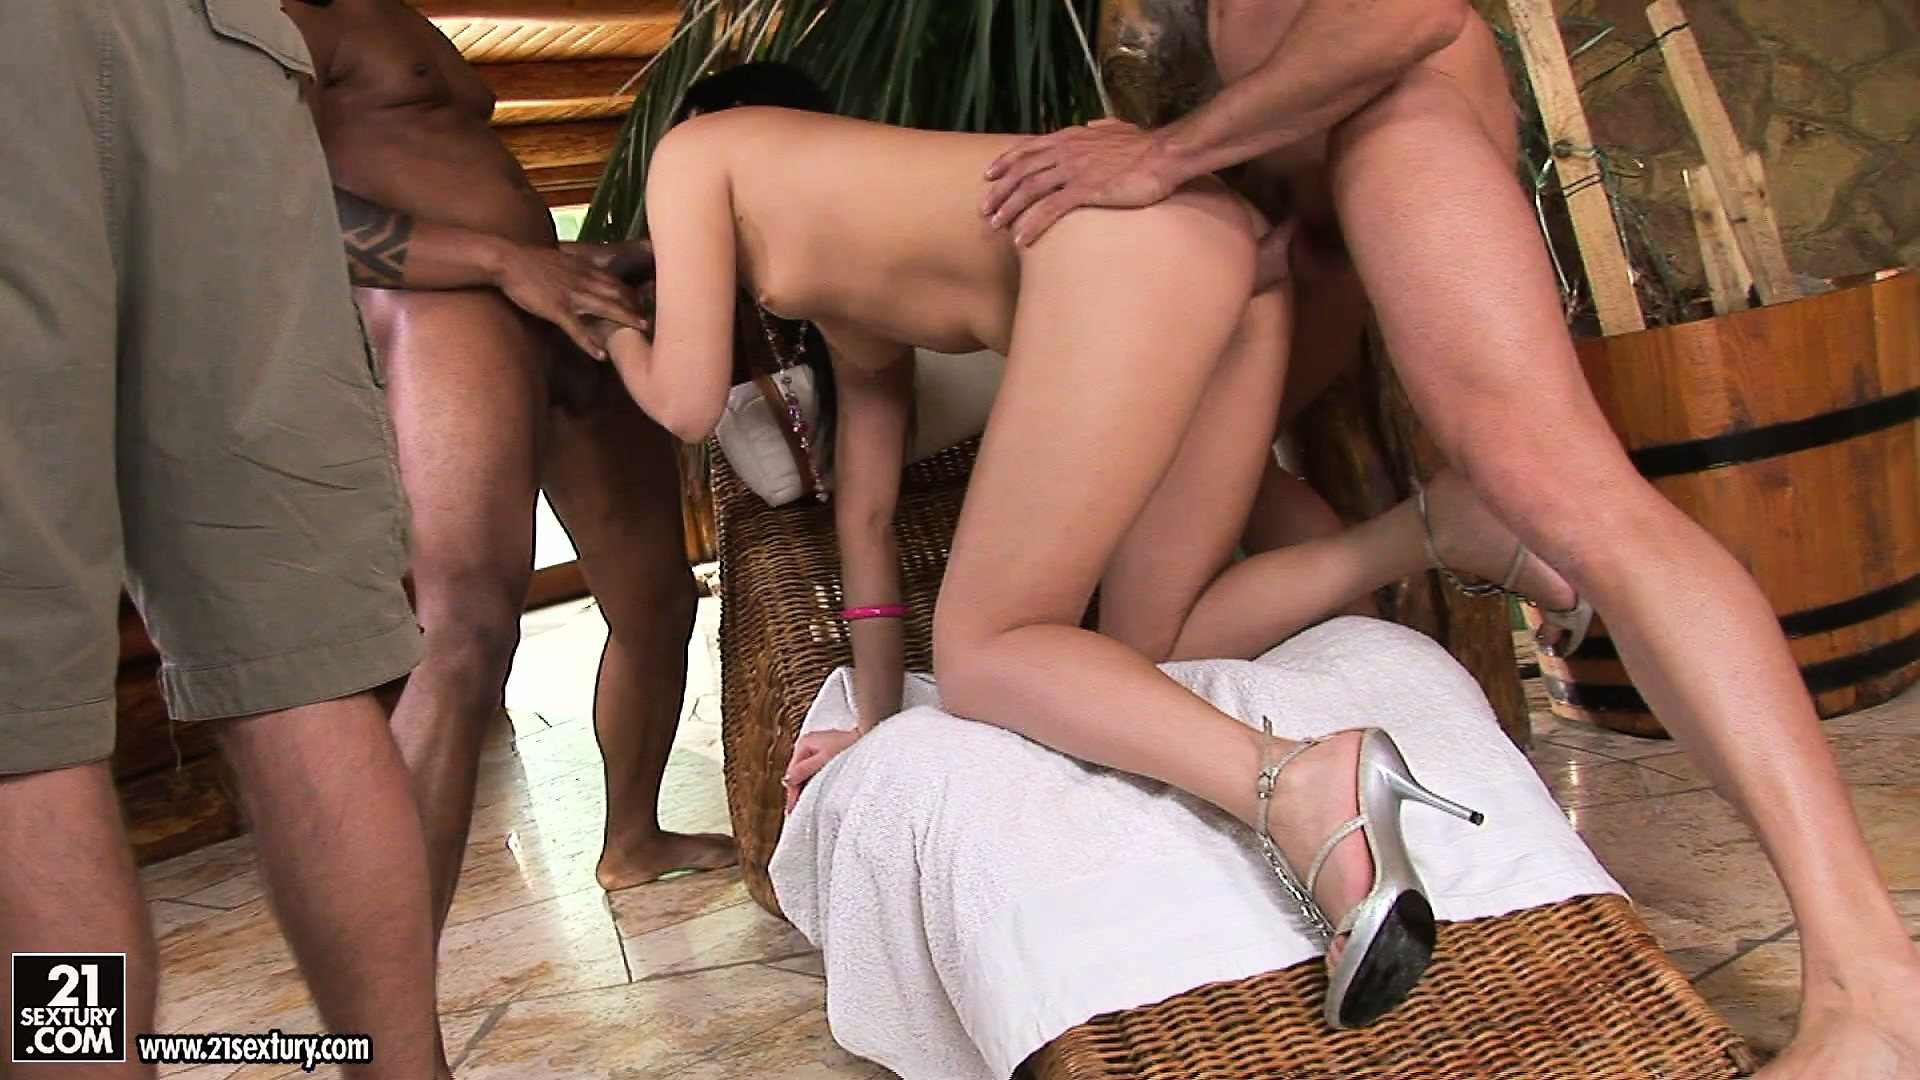 Porno Video of Join Sweet Brunette Nilla Backstage Where She Has A Hot Interracial Threesome